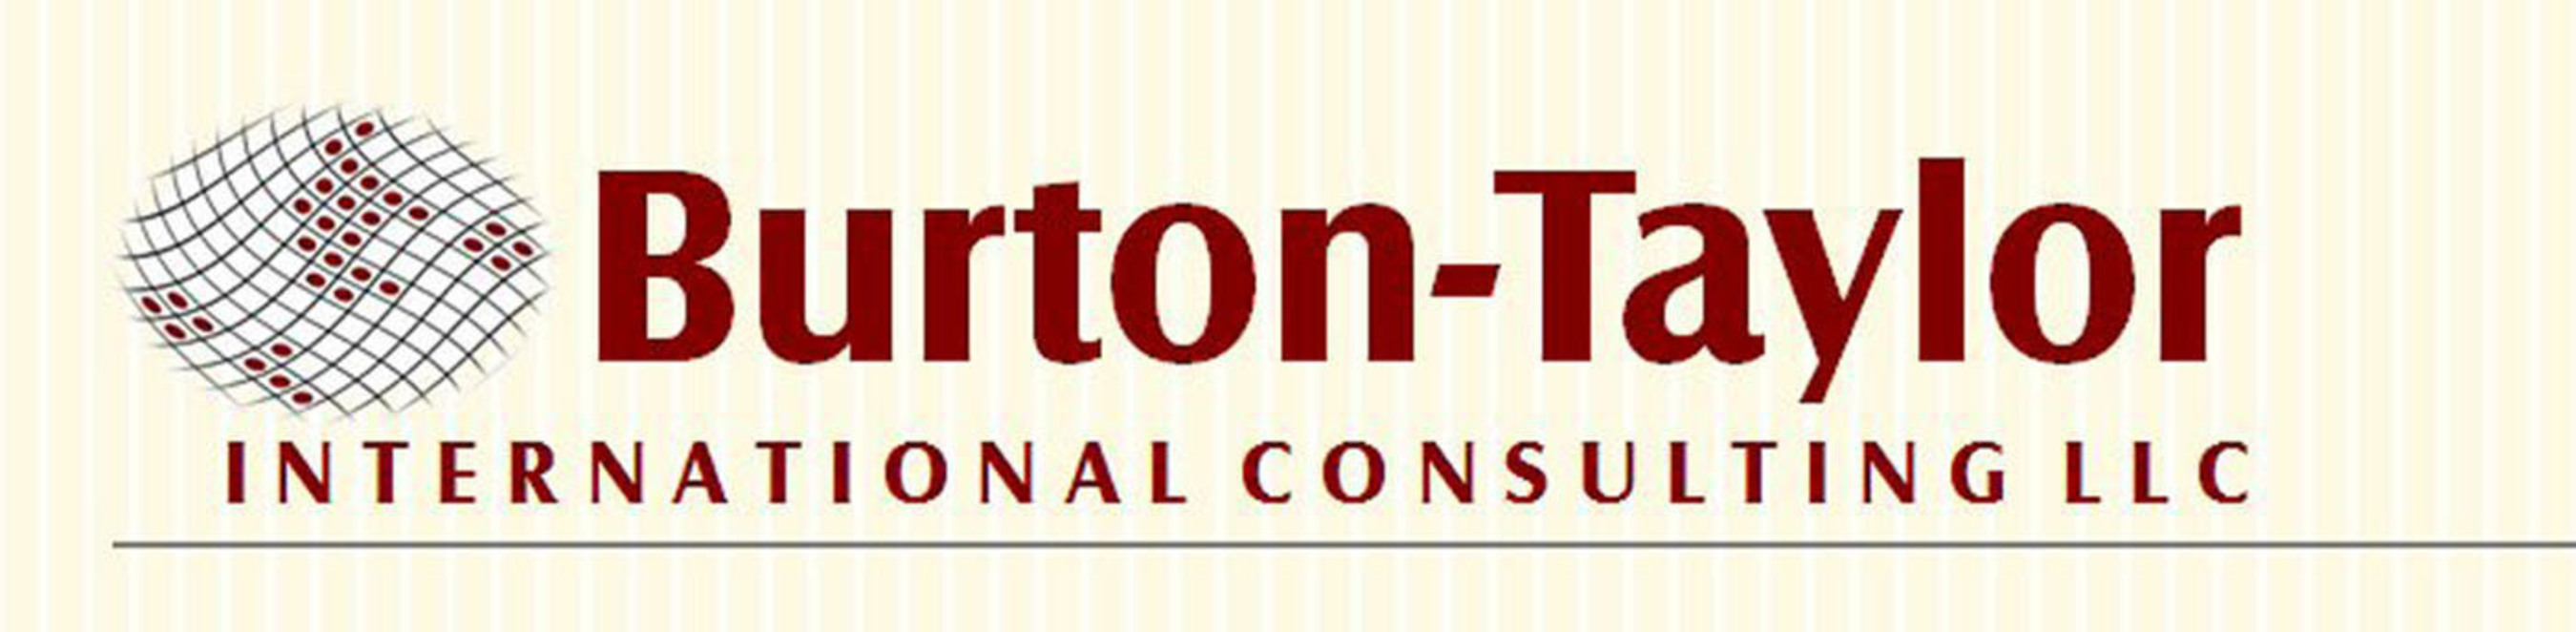 Burton-Taylor International Consulting LLC is a recognized leader in information industry market research, strategy and business consulting. Burton-Taylor market share figures are seen as standards globally. Burton-Taylor clients command an estimated 80% of global revenue share in the market data space and include the world's largest information providers, the world's biggest exchange groups, key government organizations and regulatory bodies on multiple continents, the largest advisory firms serving the...